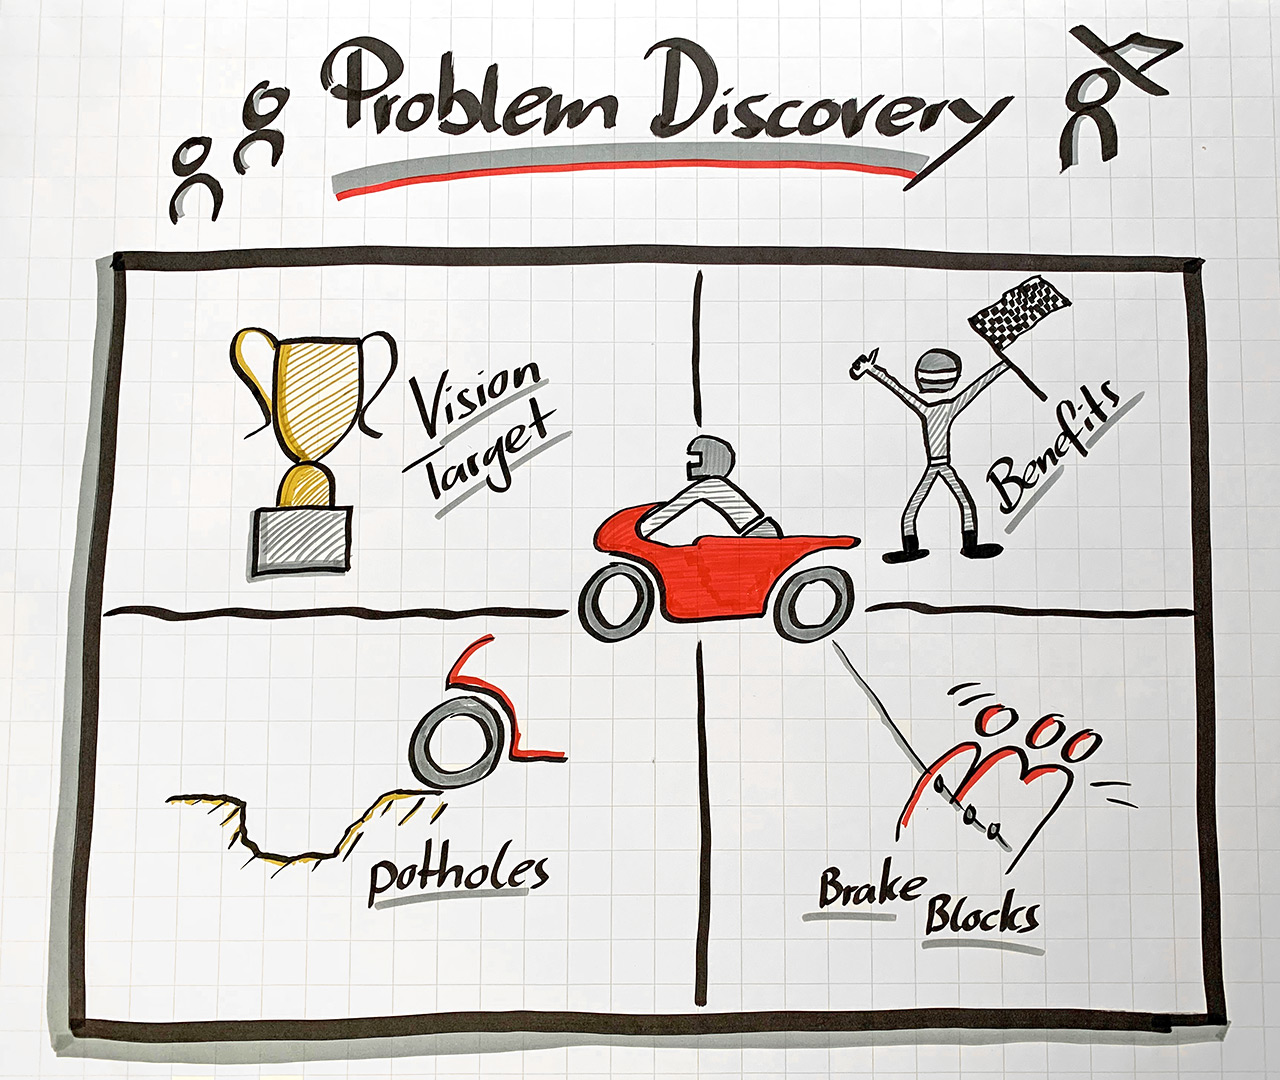 Problem Discovery